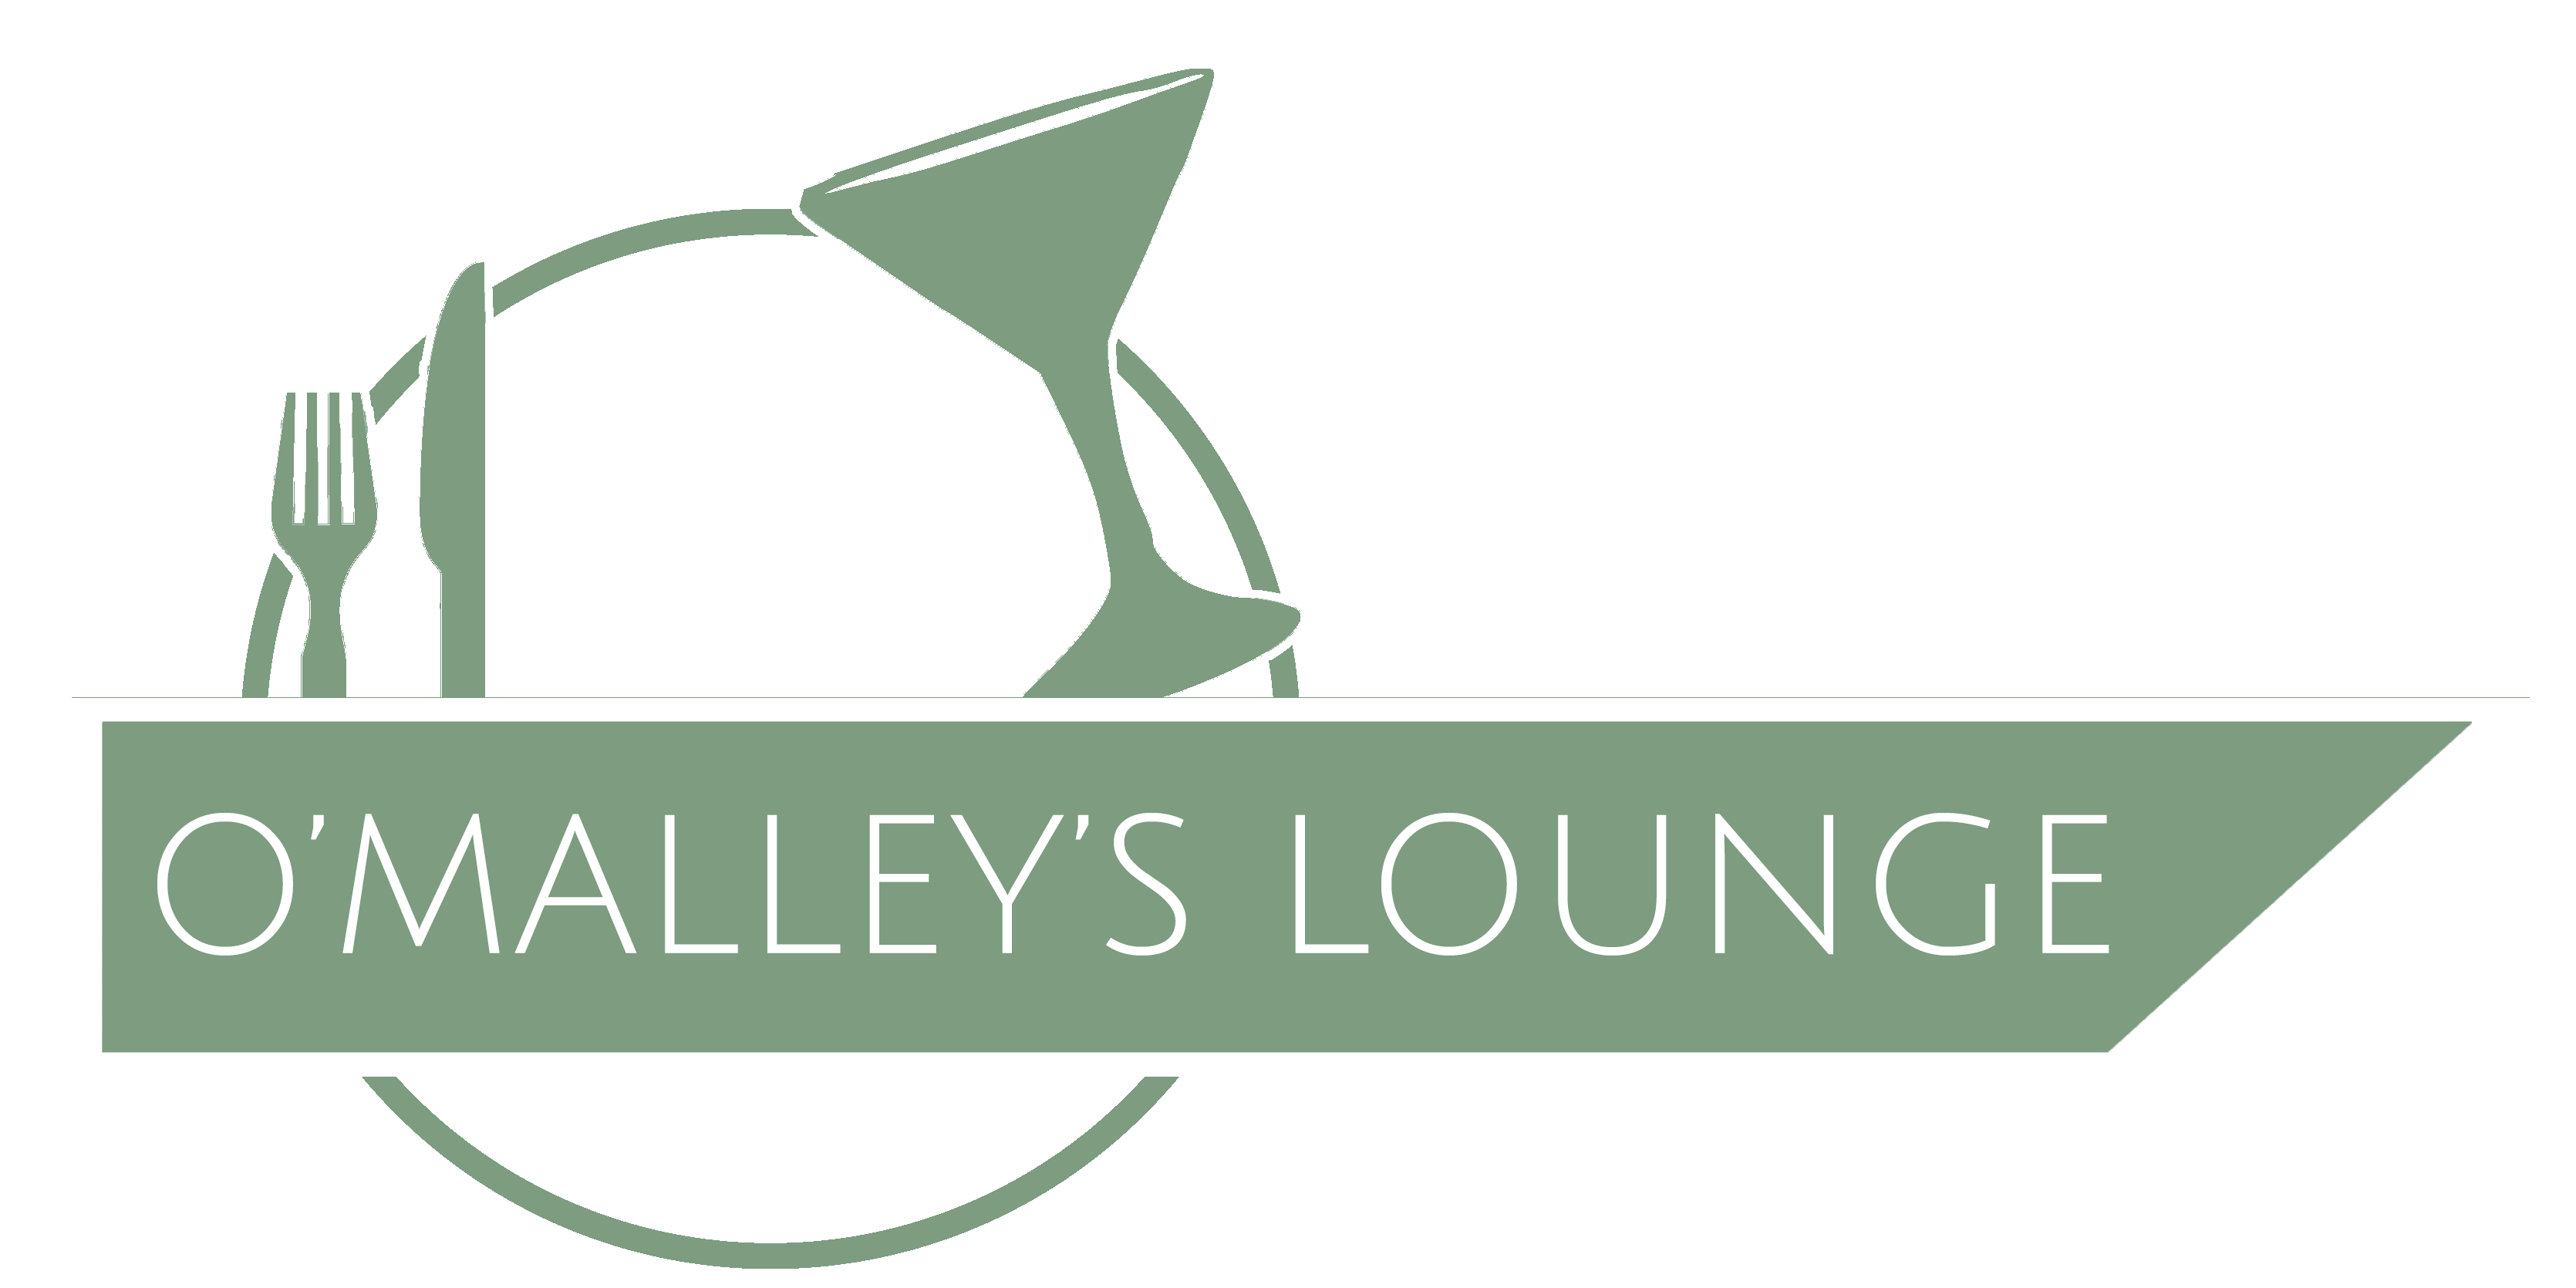 O'Malleys Lounge Logo